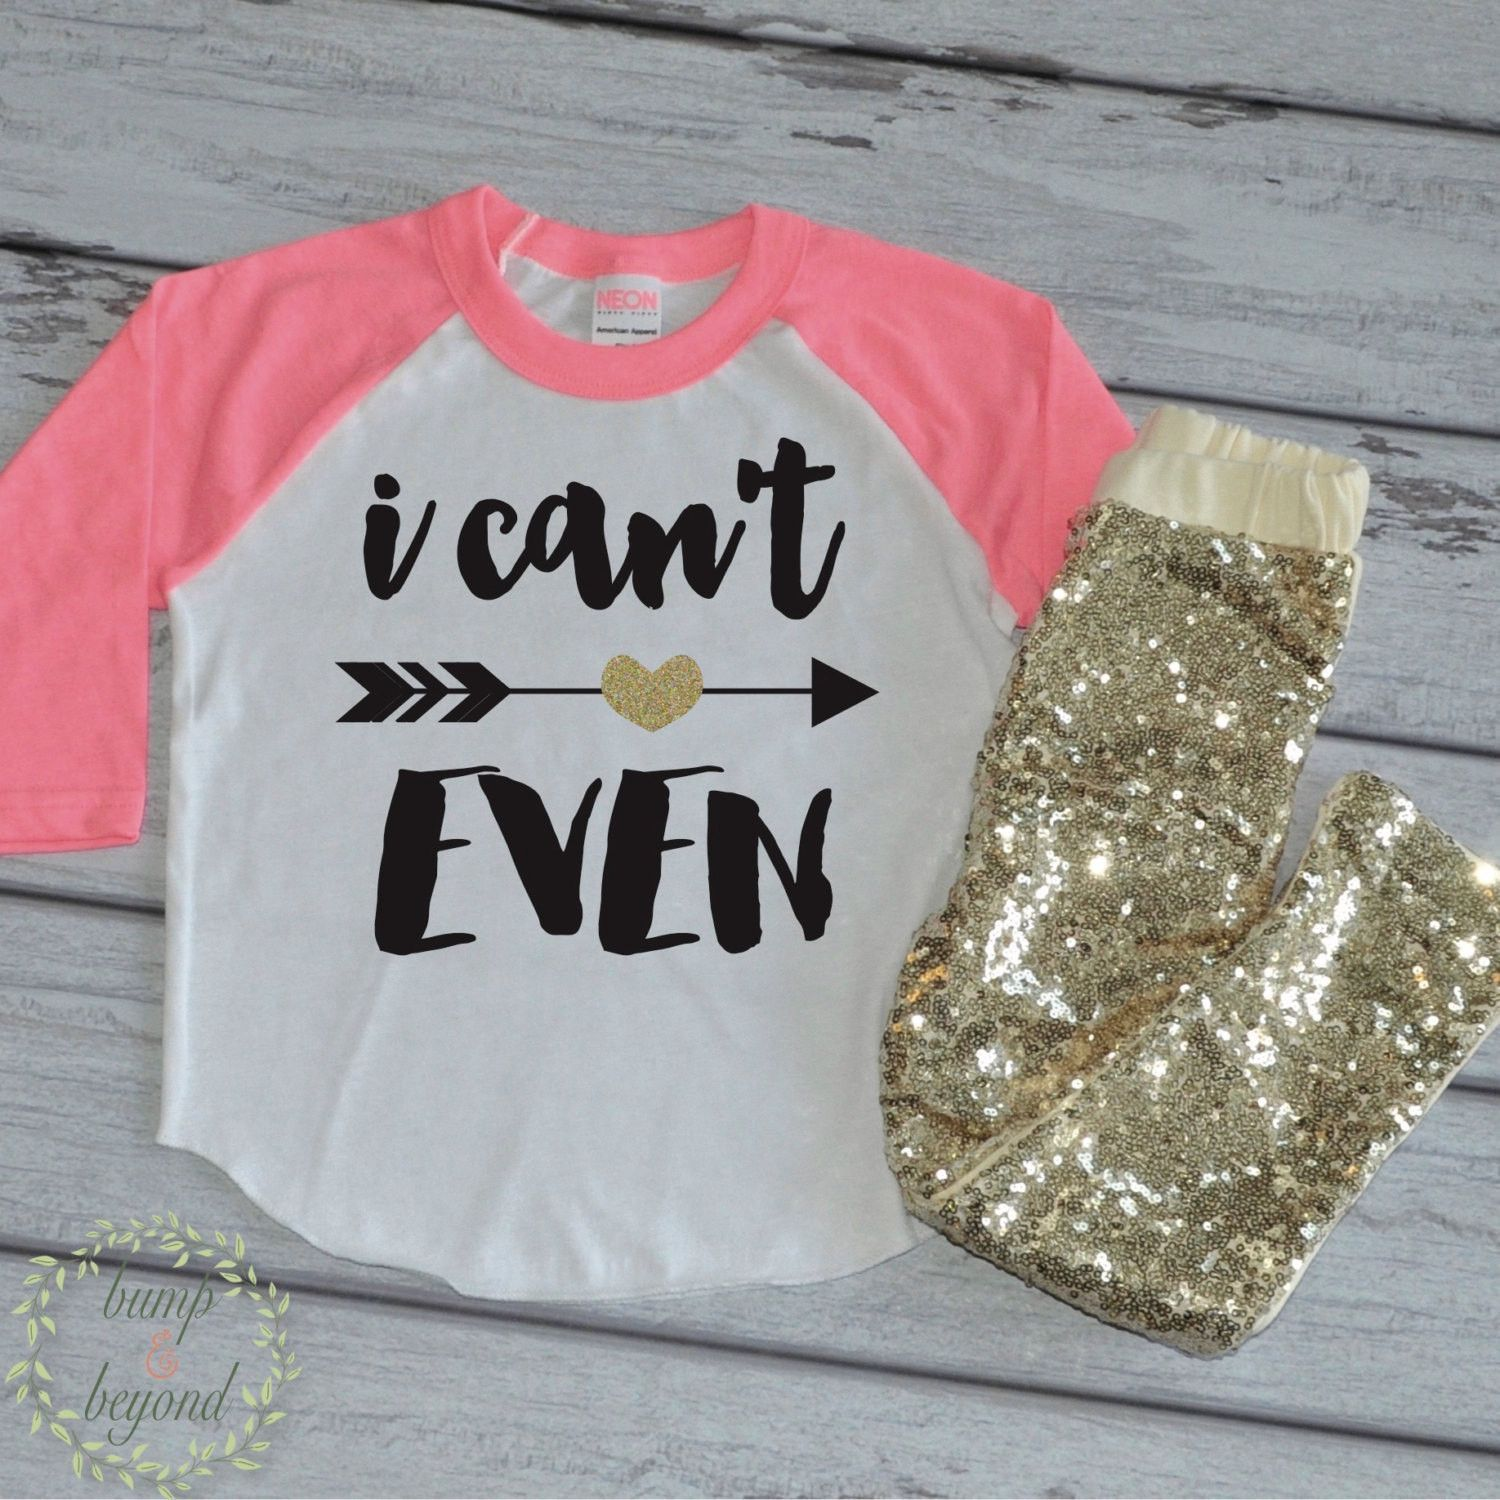 I Can't Even Shirt and Sequin Pants Toddler Girl Outfit Girl Clothes Toddler Raglan Hipster Shirt Toddler Girl Shirt Girl Hipster Clothes 53 is part of Girl Clothes Outfits - www BumpAndBeyondDesigns com We strive to provide quality products as well as excellent customer service  We ship orders quickly and do our best to please each and every customer! Please check the home page for current ship times   Thank you for choosing Bump and Beyond Designs and supporting small businesses